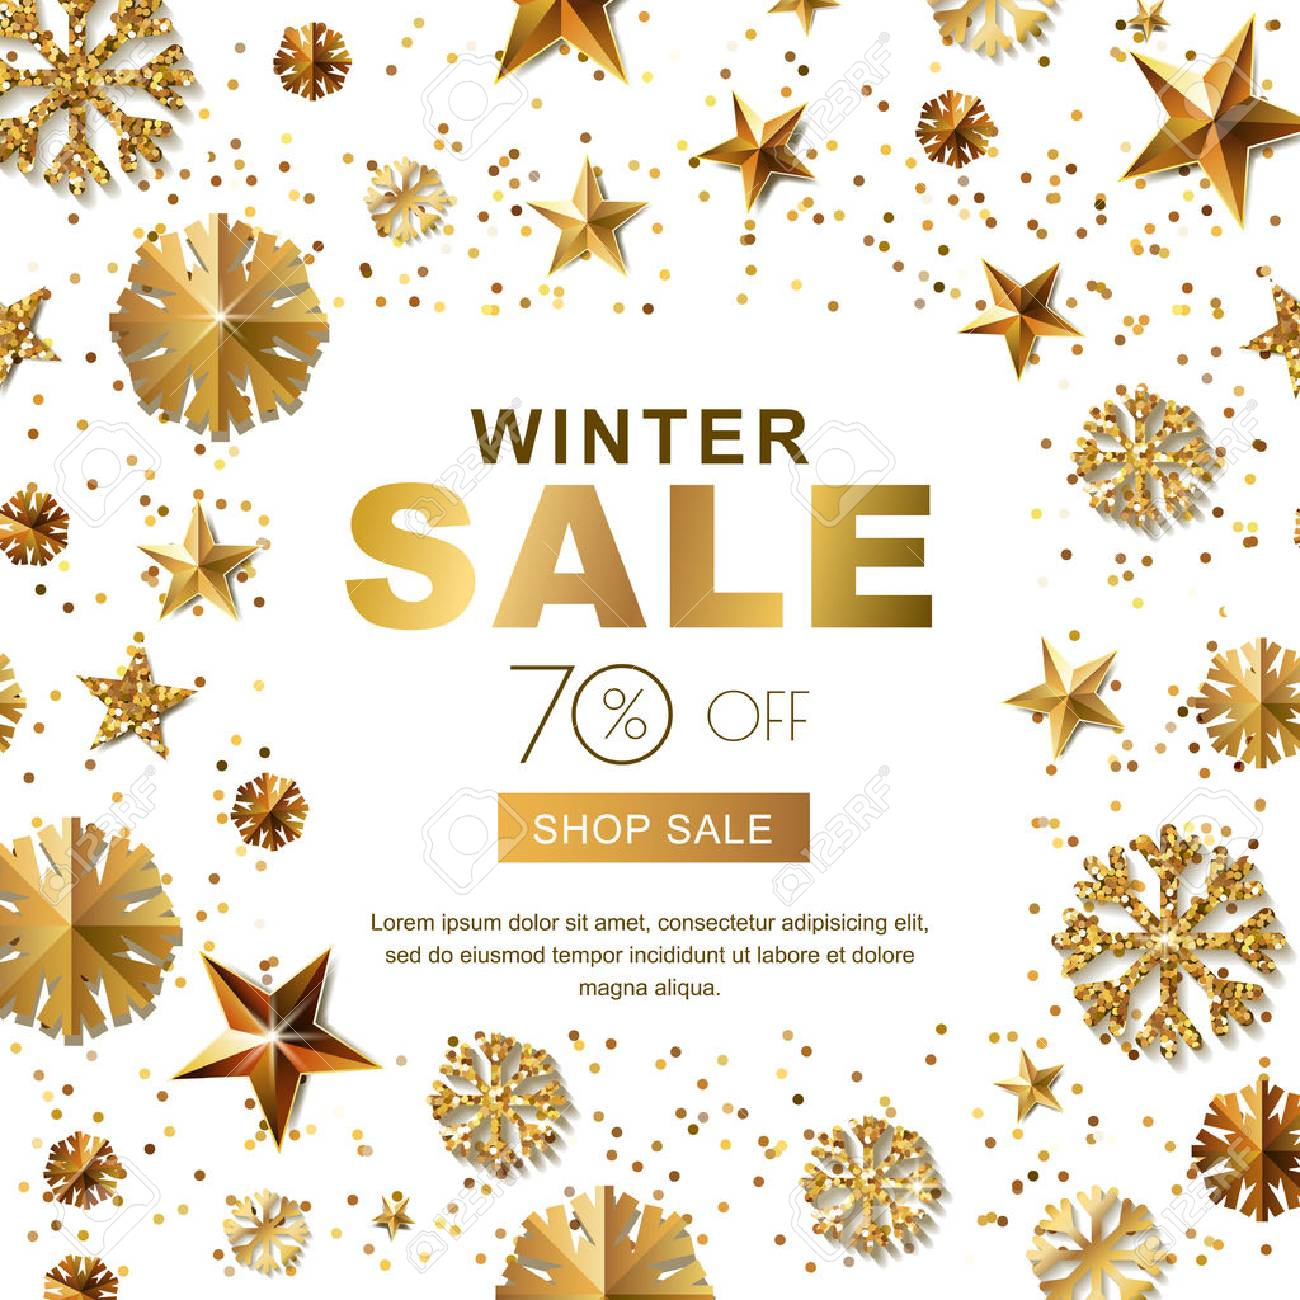 Winter Sale Banners Gryffindor Crest Banners